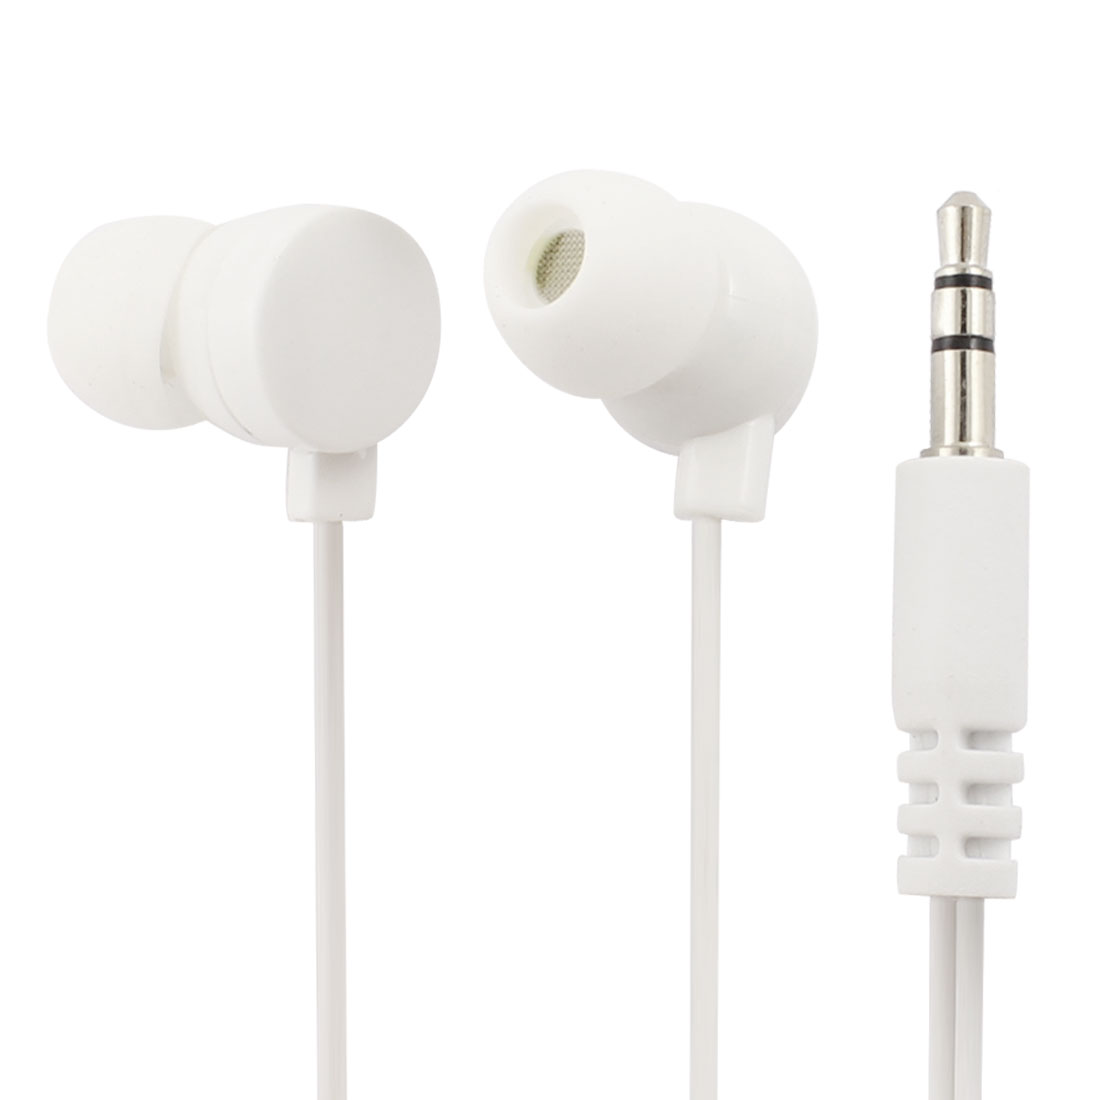 1.2M Cable 3.5mm In Ear Earphone White w Donut Winder for MP3 Smartphone